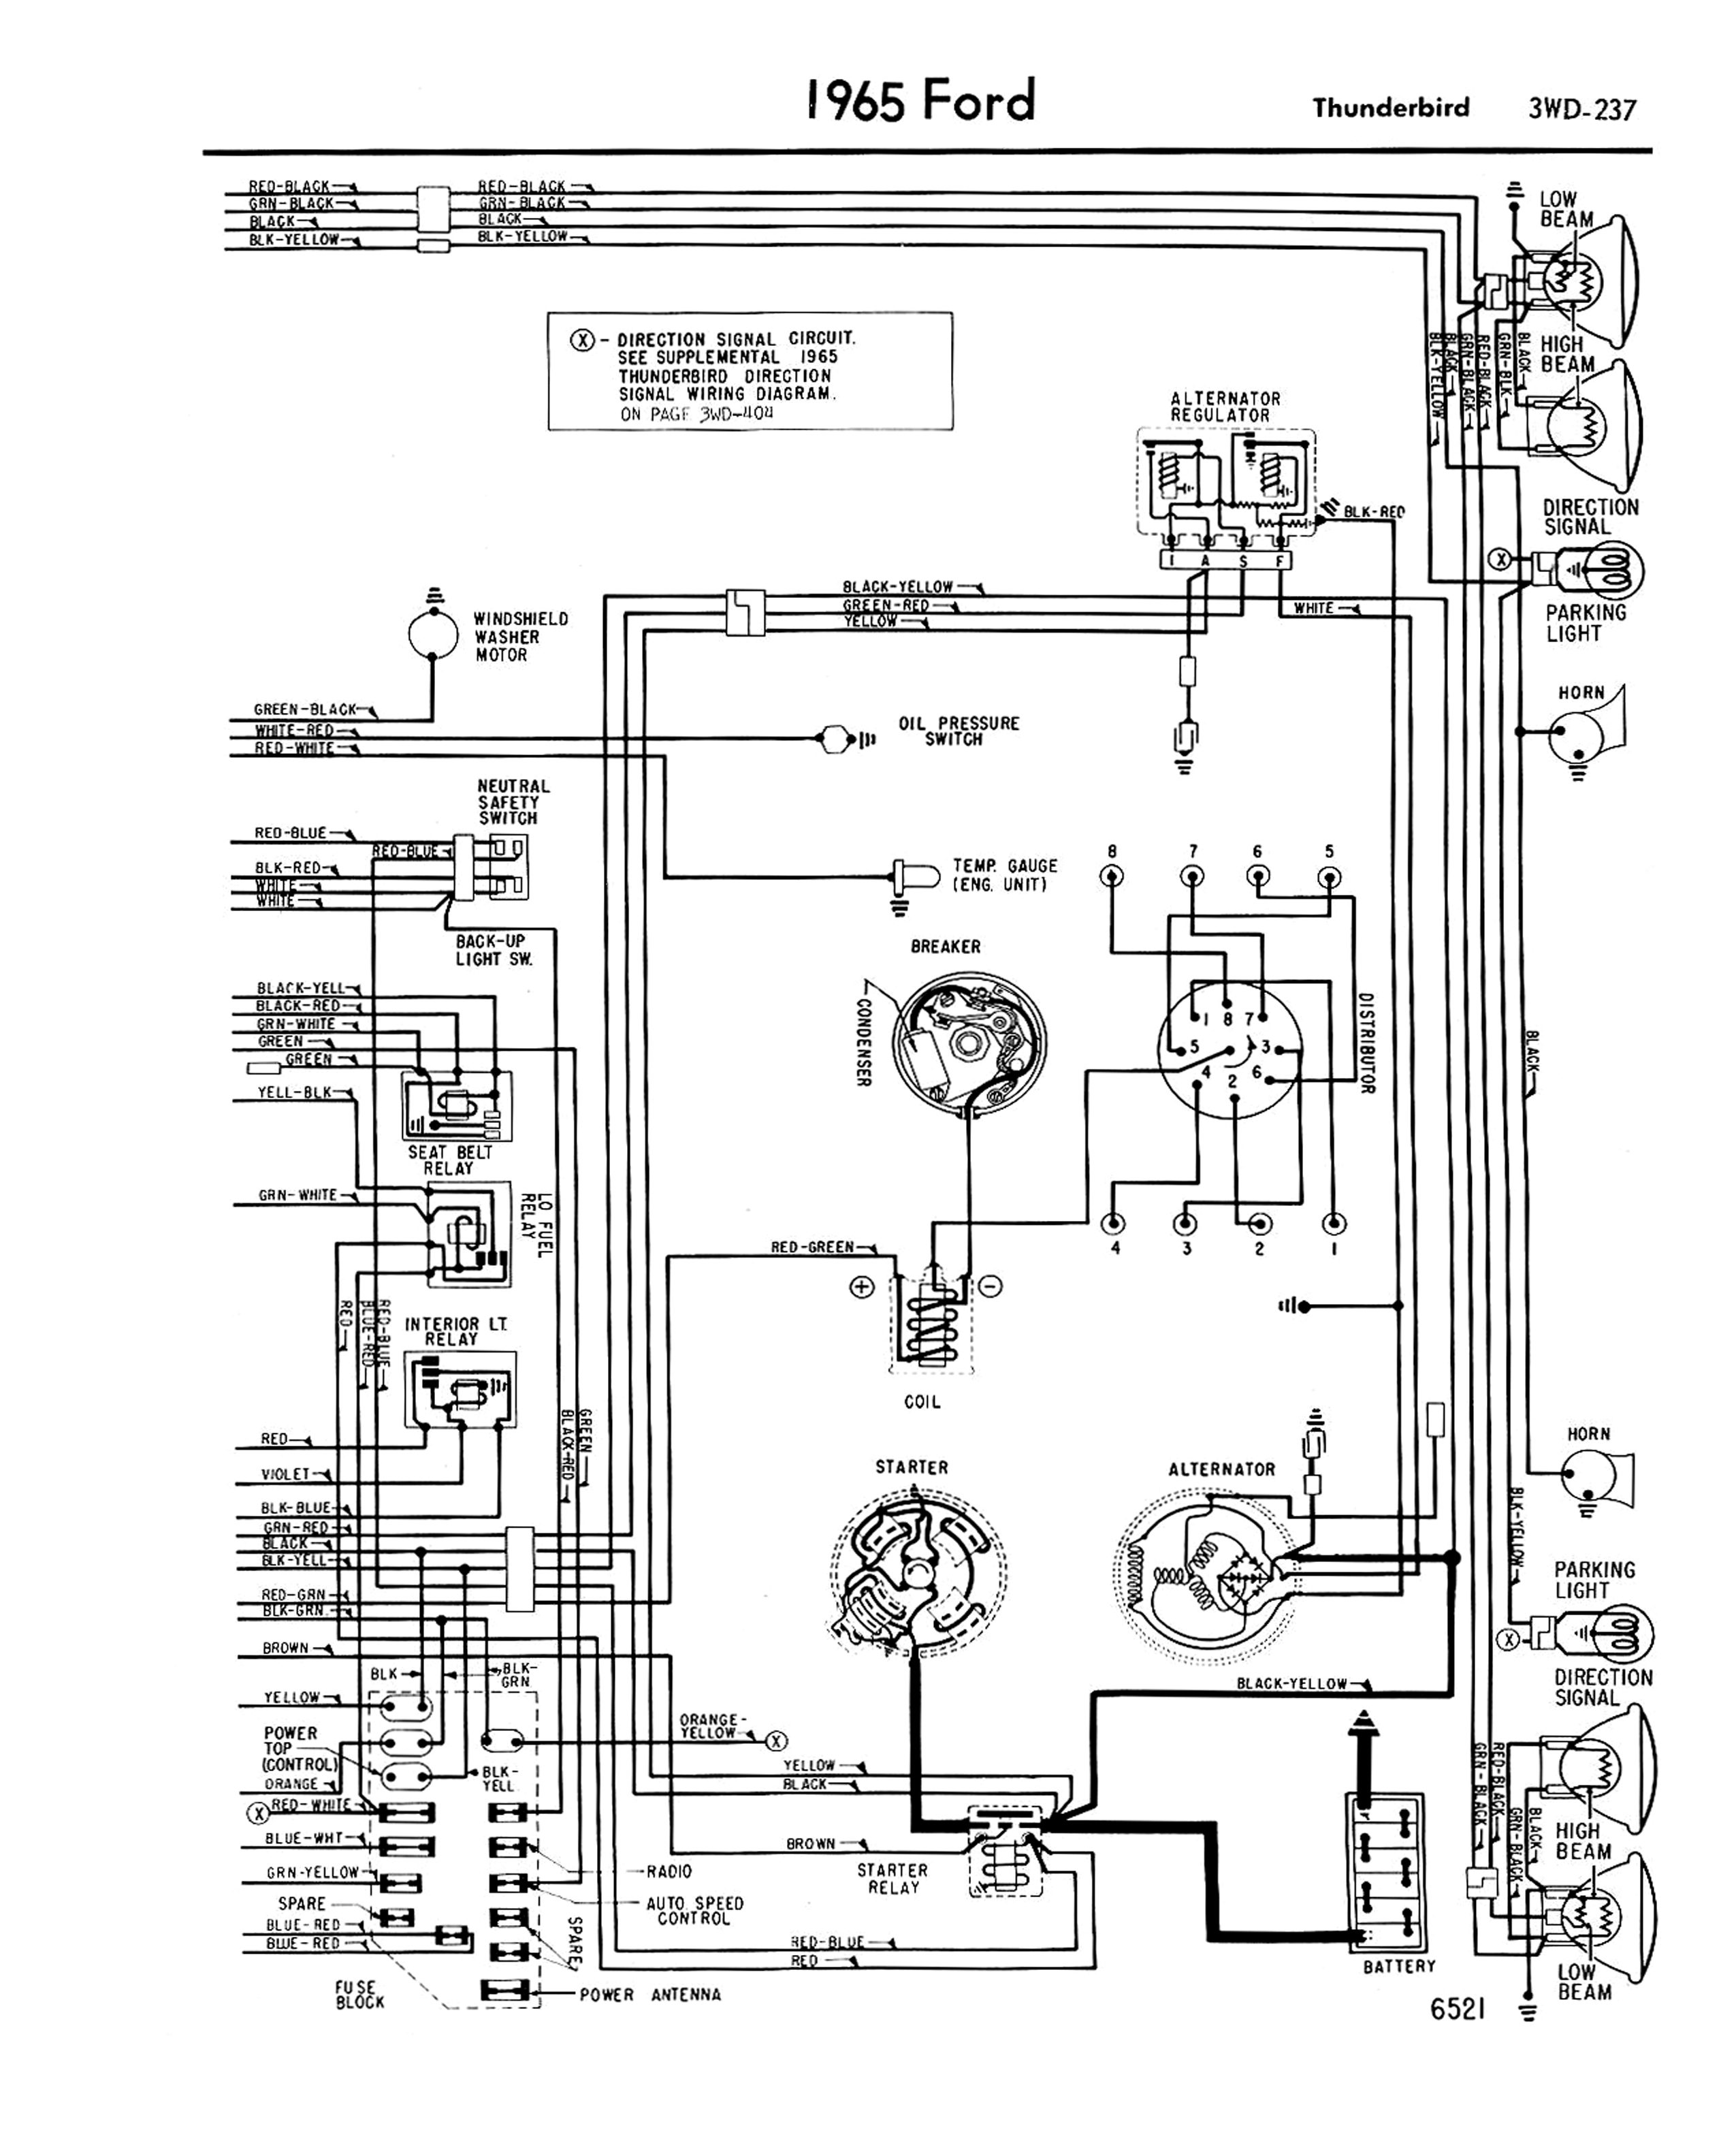 Thunderbird Wiring Diagram Great Installation Of Epiphone 1958 Third Level Rh 15 19 21 Jacobwinterstein Com 1956 Ford Gibson